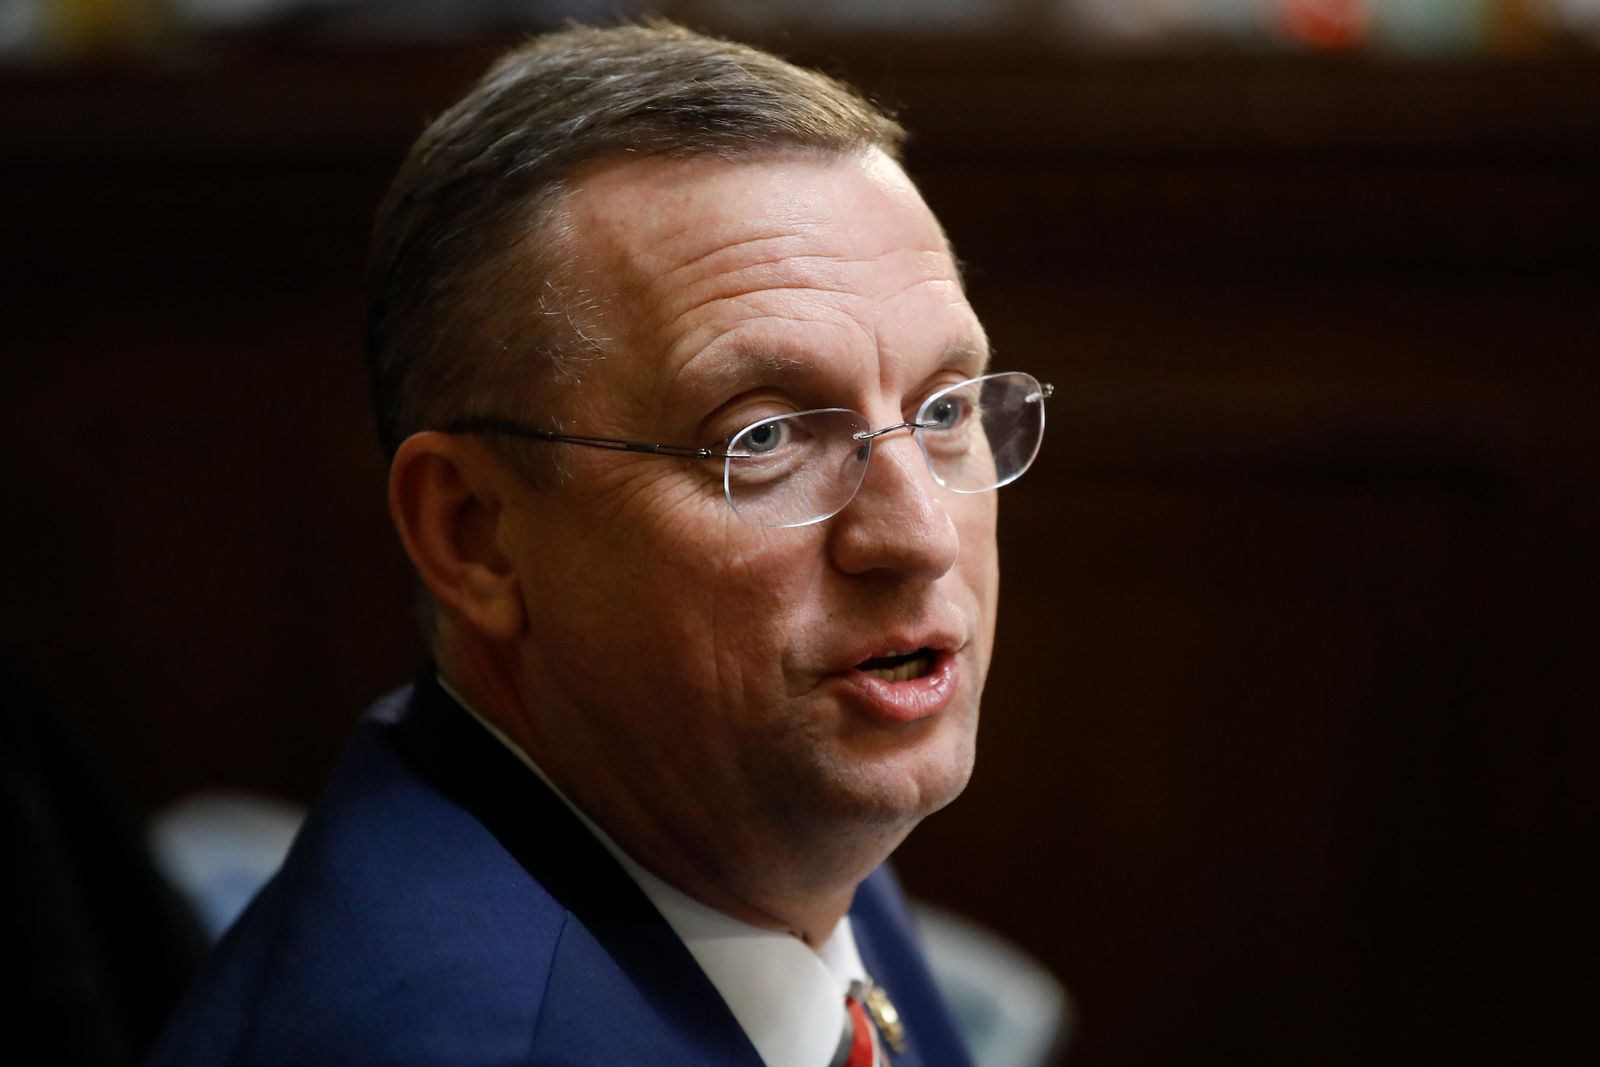 FILE- In this Dec. 17, 2019 file photo, Rep. Doug Collins, R-Ga., speaks during a House Rules Committee hearing on the impeachment against President Donald Trump on Capitol Hill in Washington. Collins is expected to challenge newly appointed Sen. Kelly Loeffler for her Senate seat this year. That will prompt a battle within the GOP that could enhance Democrats' chances of capturing the seat this November. (AP Photo/Matt Rourke, File)